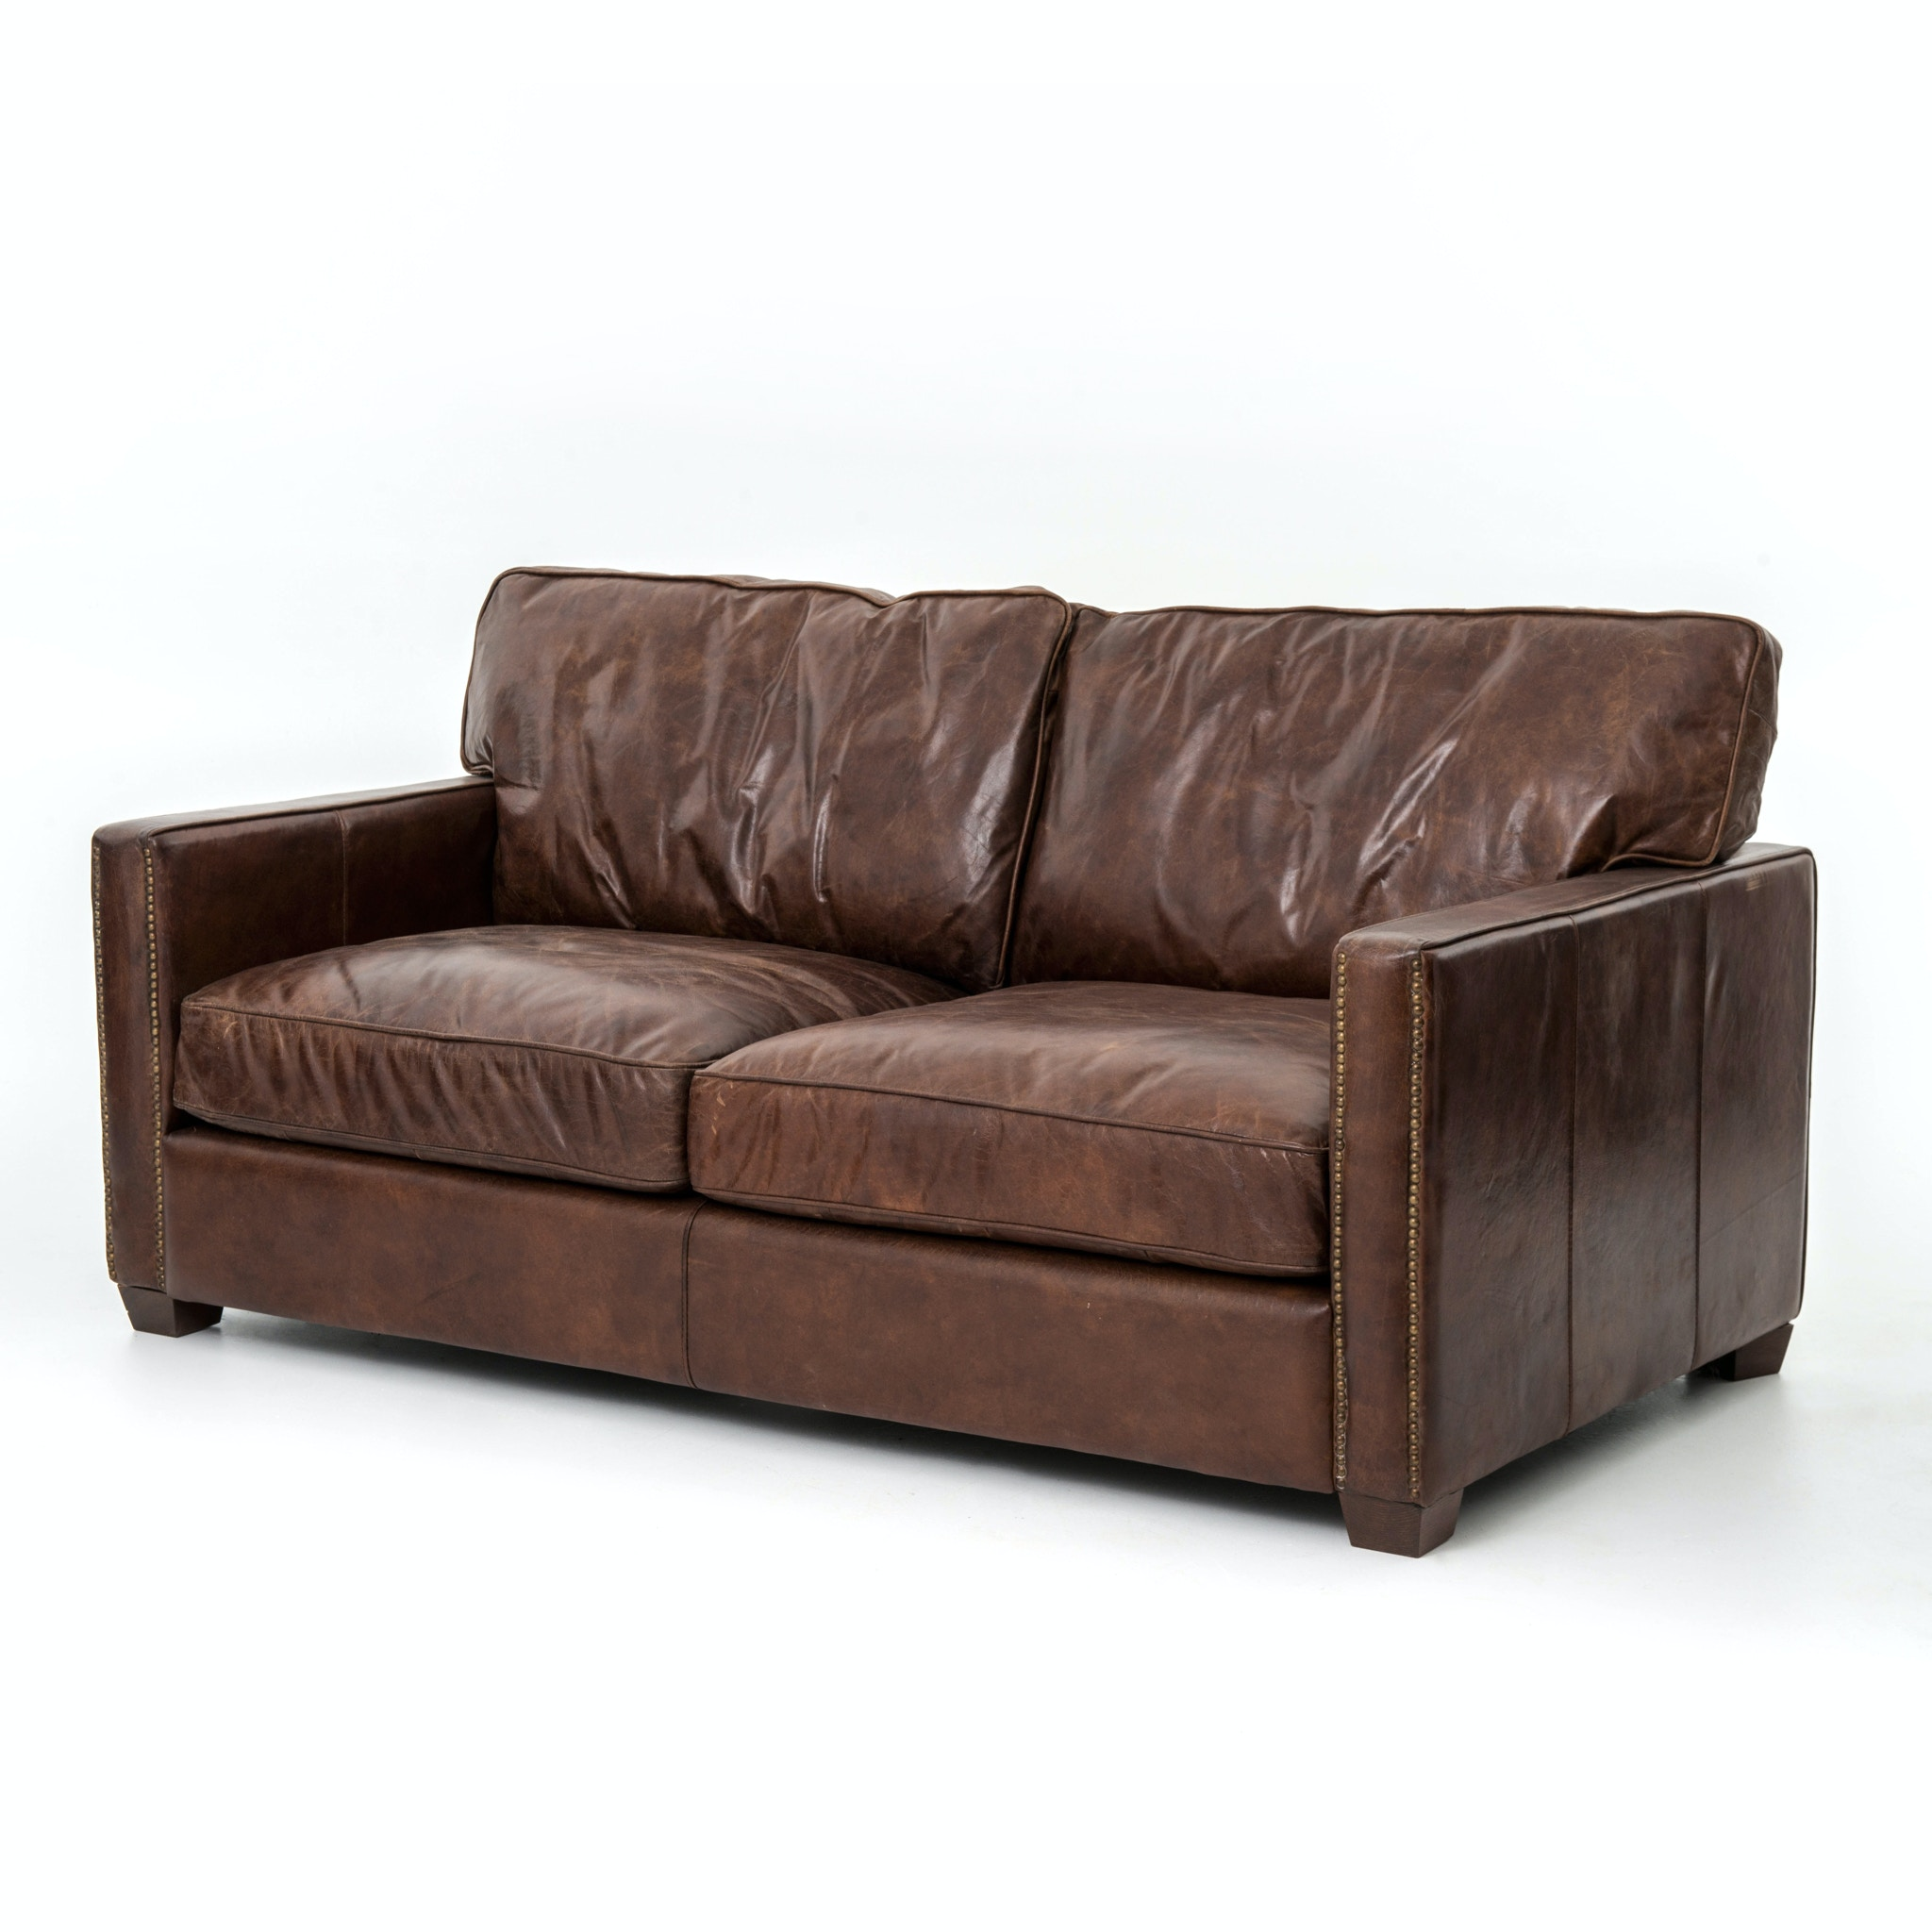 Four Hands Furniture Ccar 24 Living Room Larkin 72 Inch Sofa Cigar